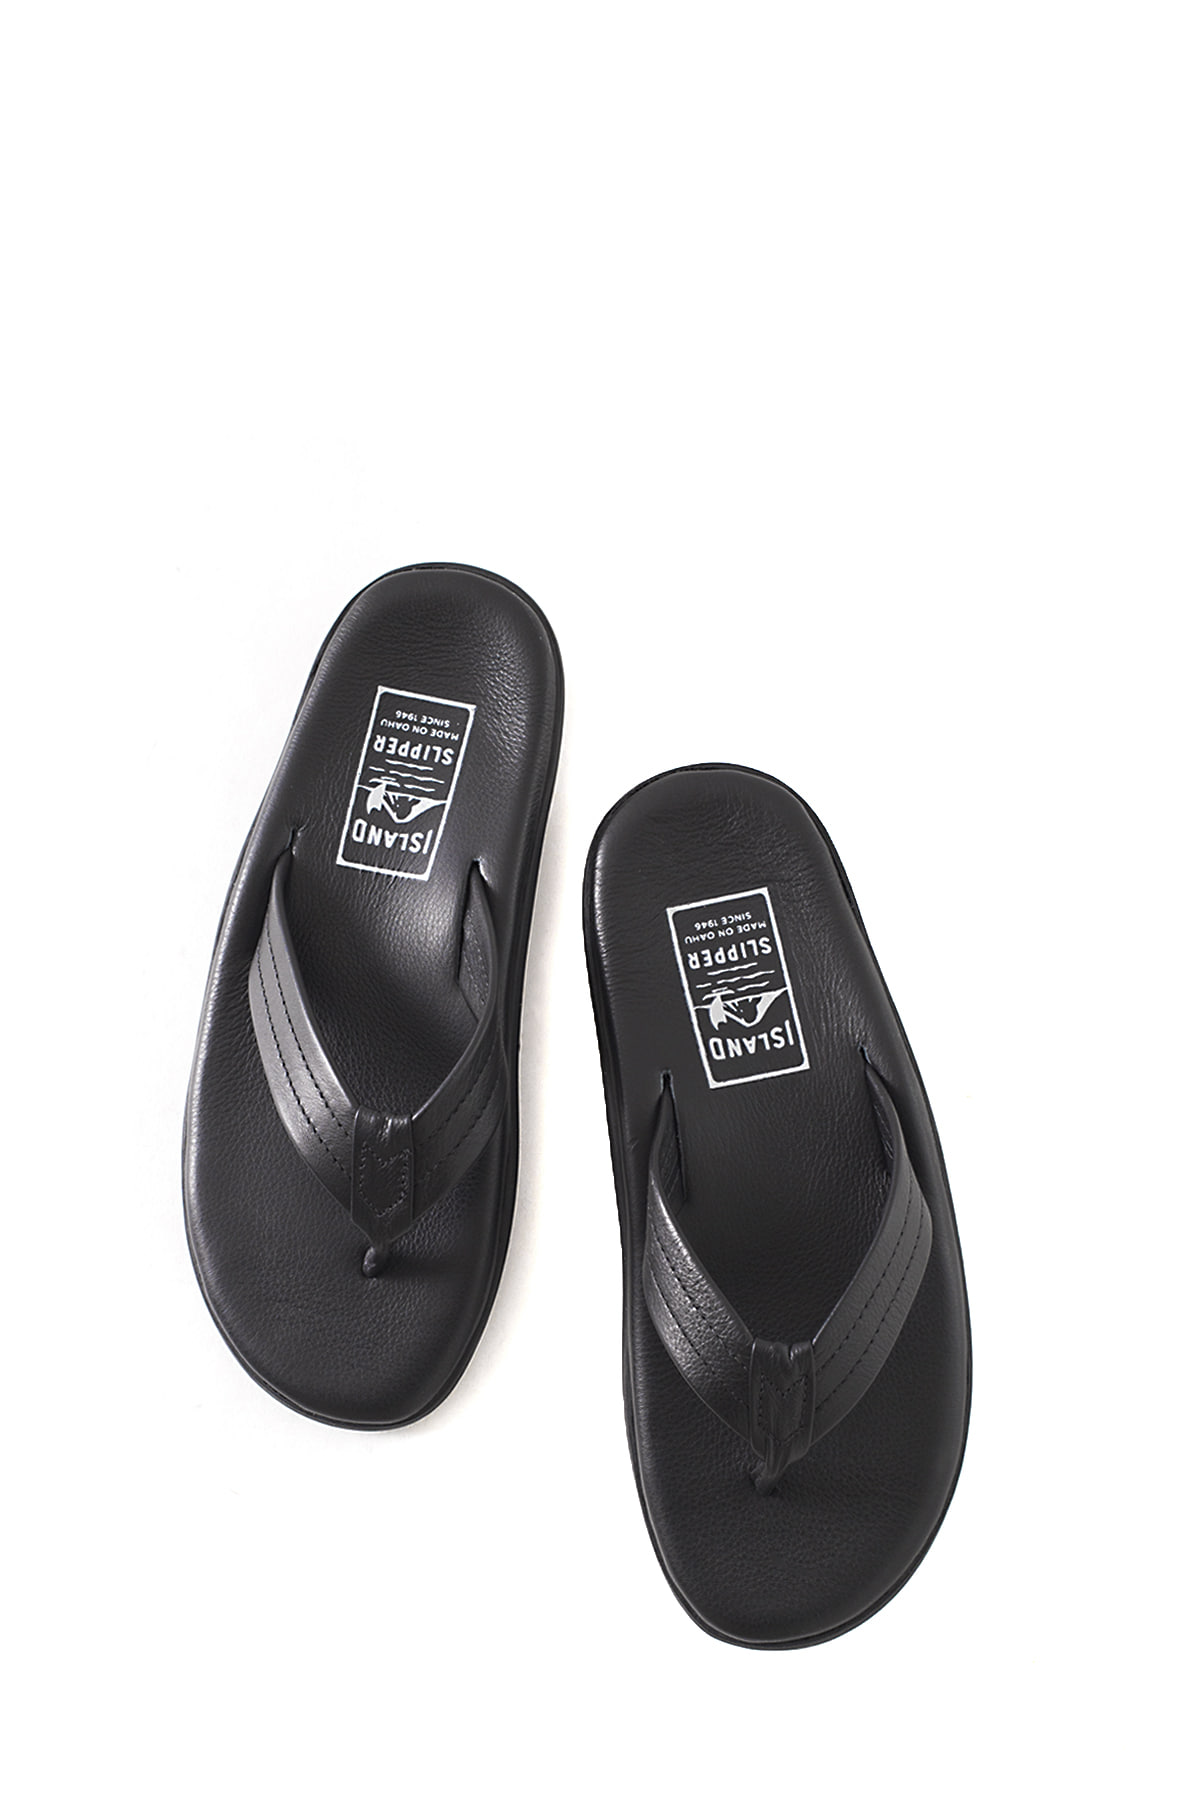 ISLAND SLIPPER : PB202 (Black)